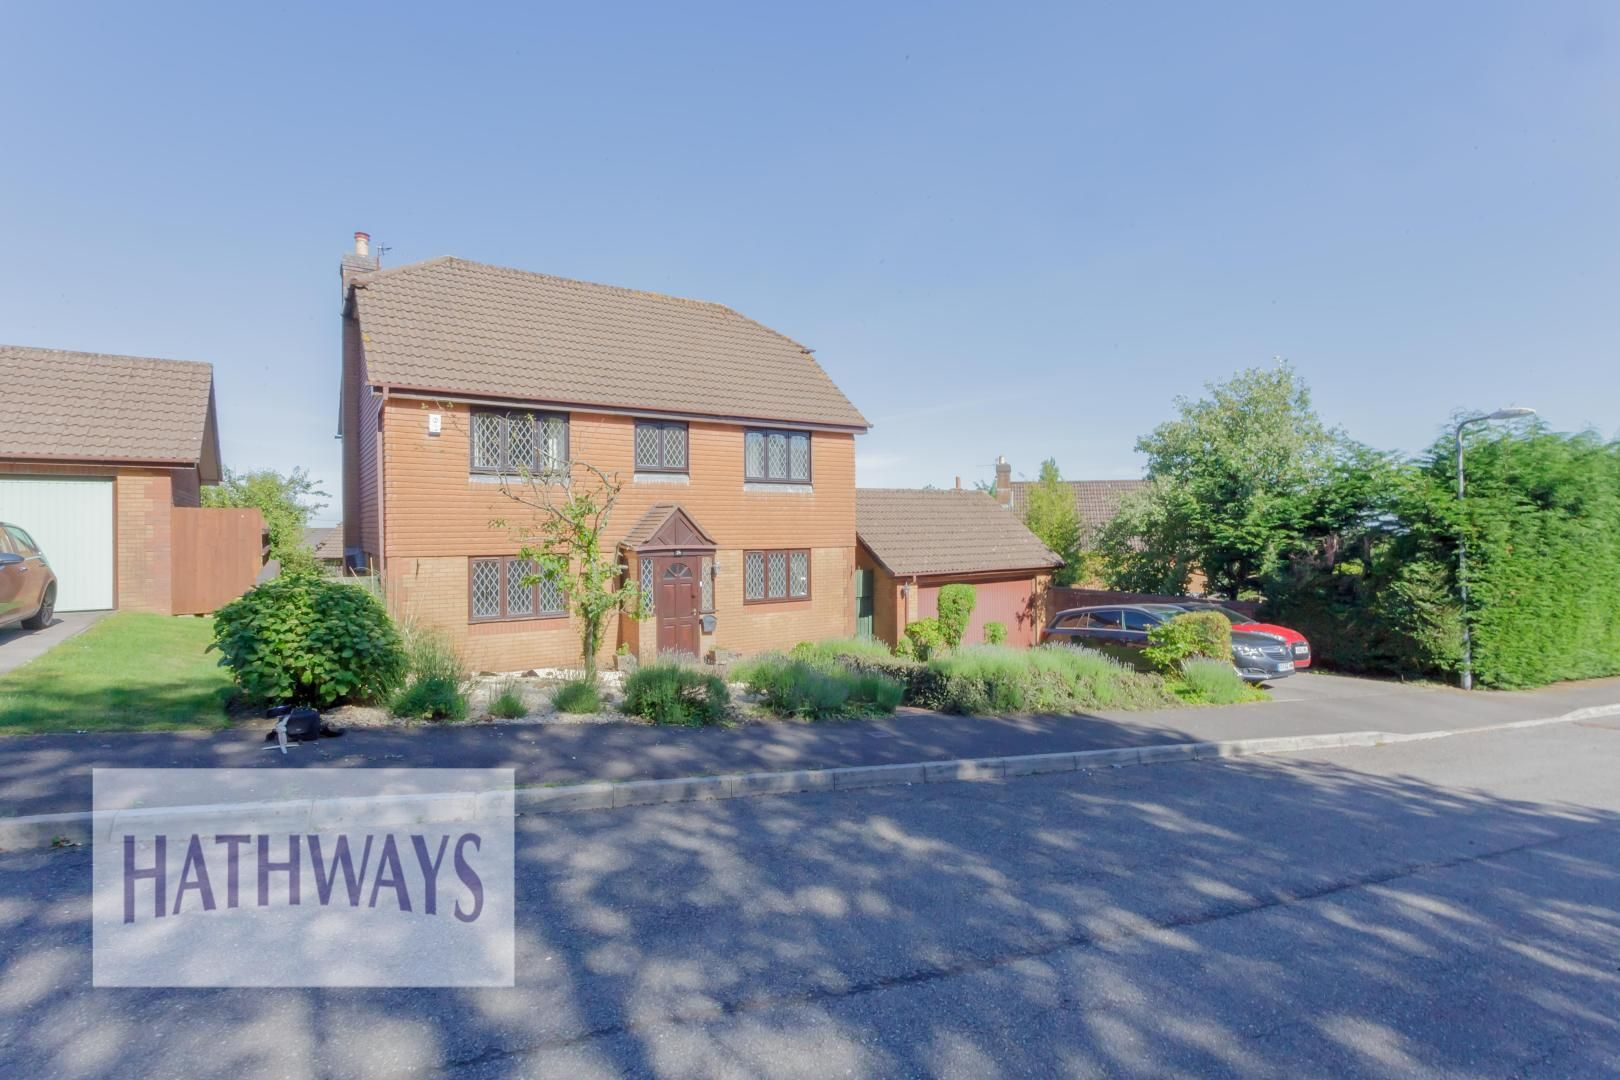 4 bed house for sale in Dorallt Close, NP44